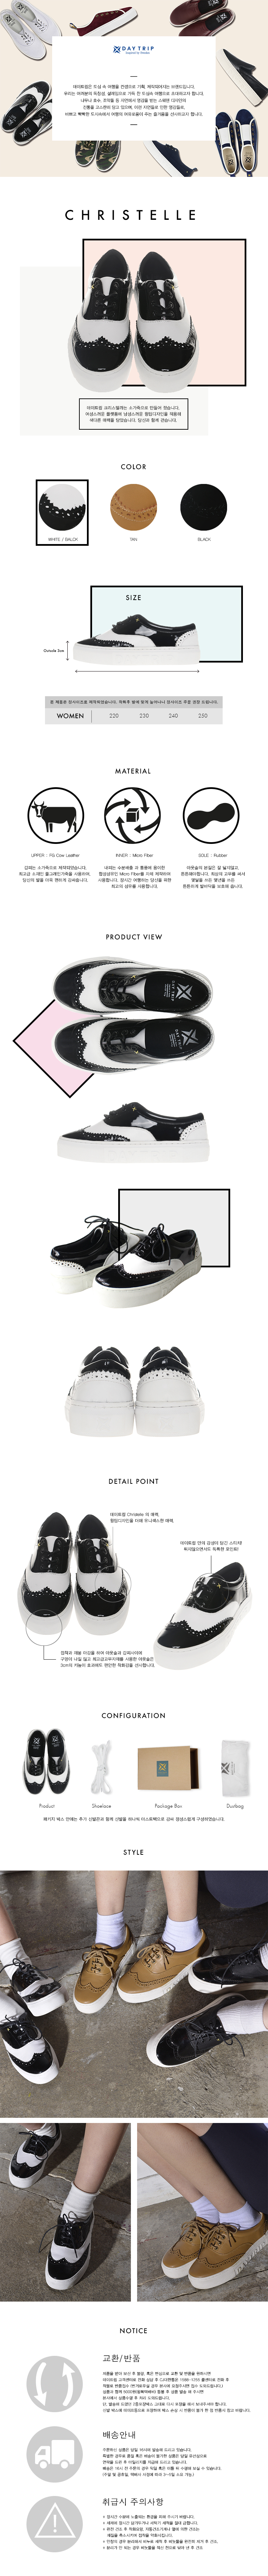 [DAYTRIP] Christelle White/Black